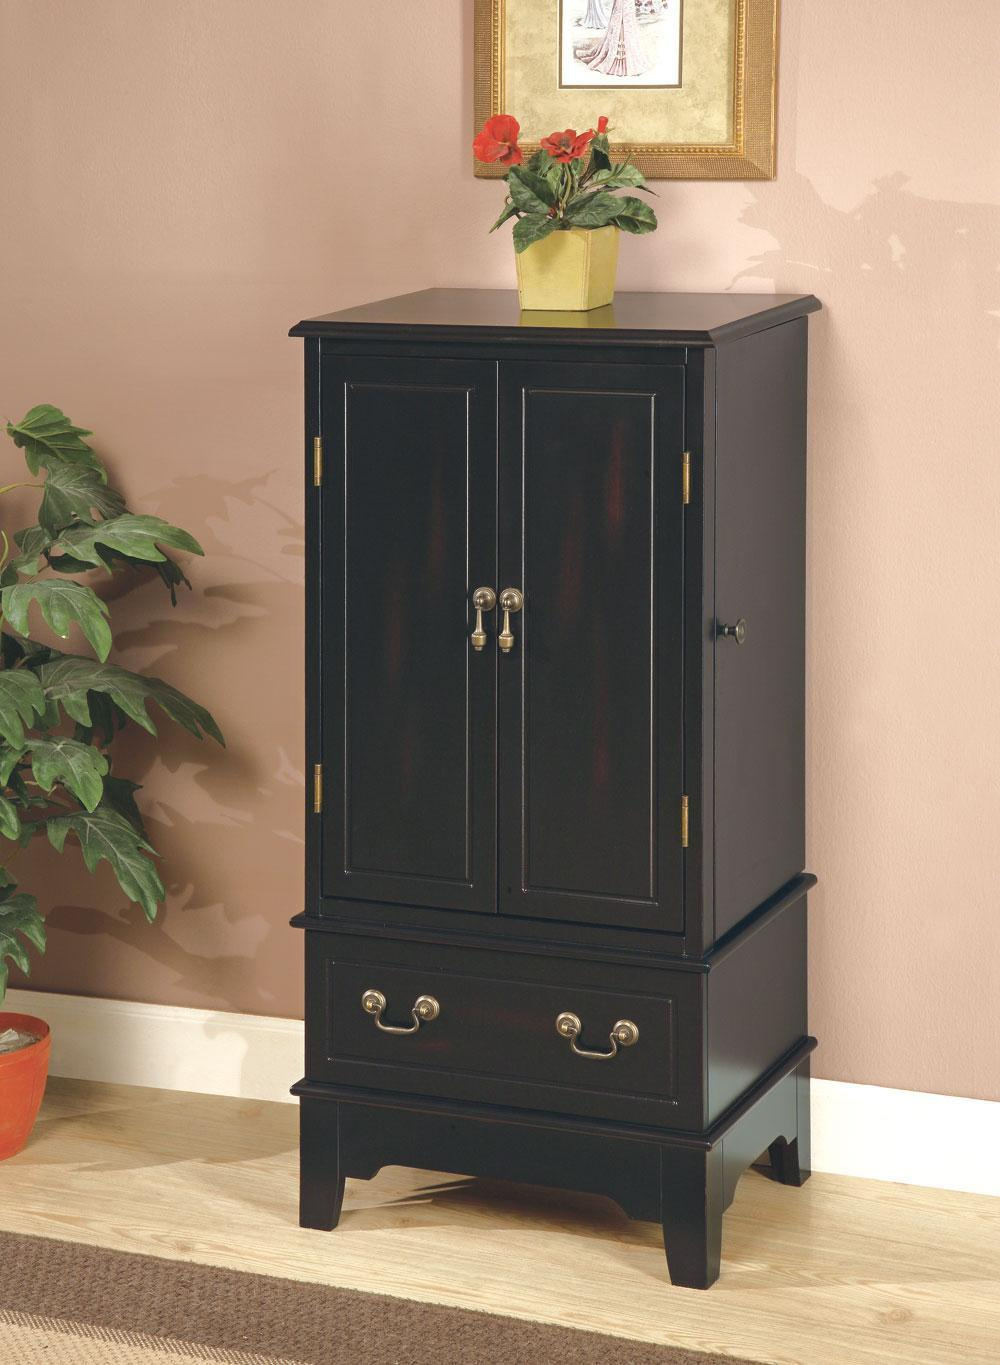 Rubbed Through Black Jewelry Armoire